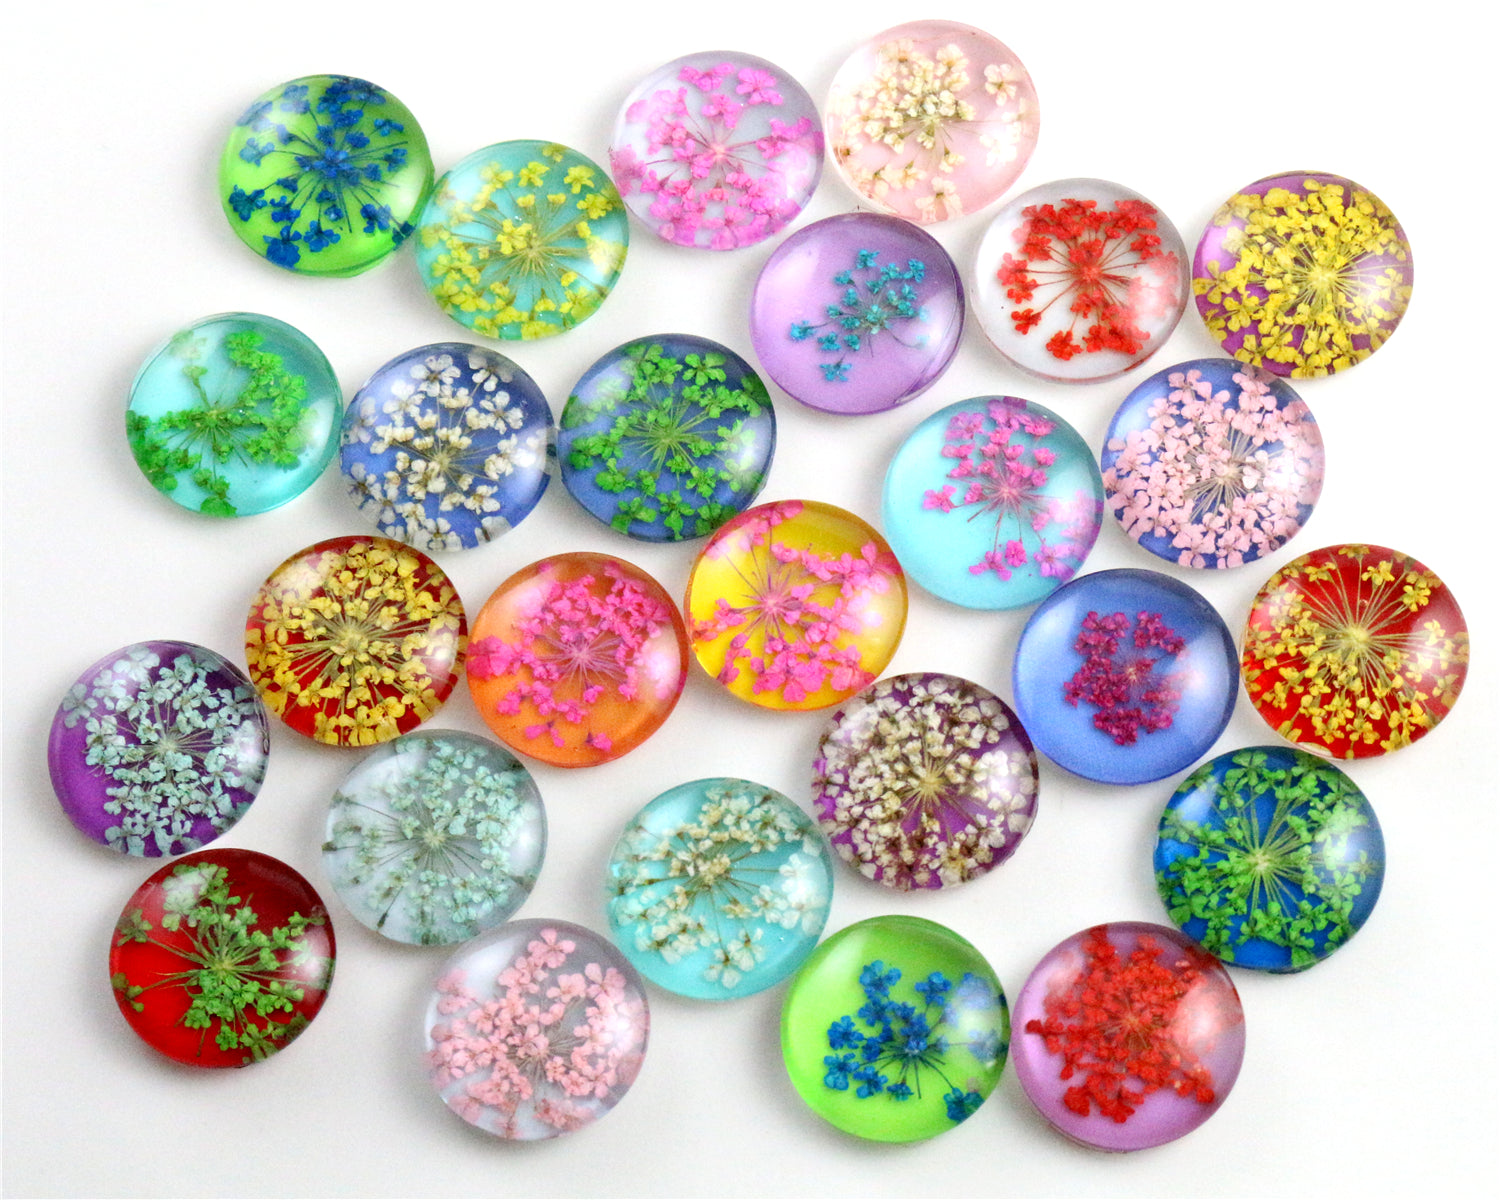 18mm Round Glass Cabochons Mixed Natural Dried Flowers Fit Cameo Pendant Setting